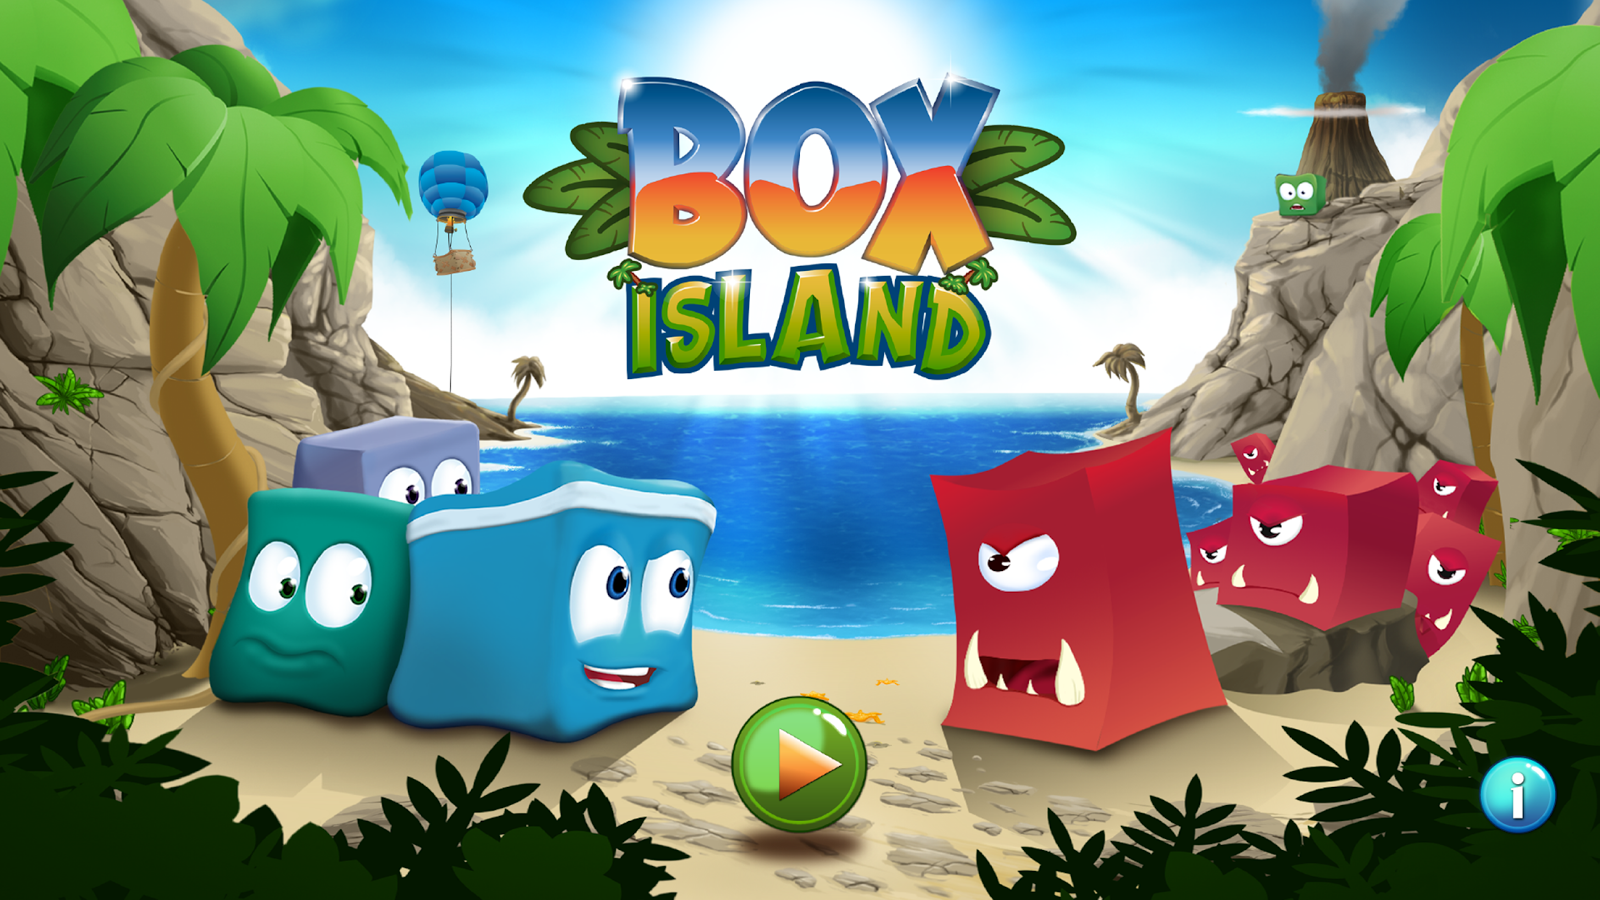 Box Island - Kids Coding Game! (Unreleased) Screenshot 4